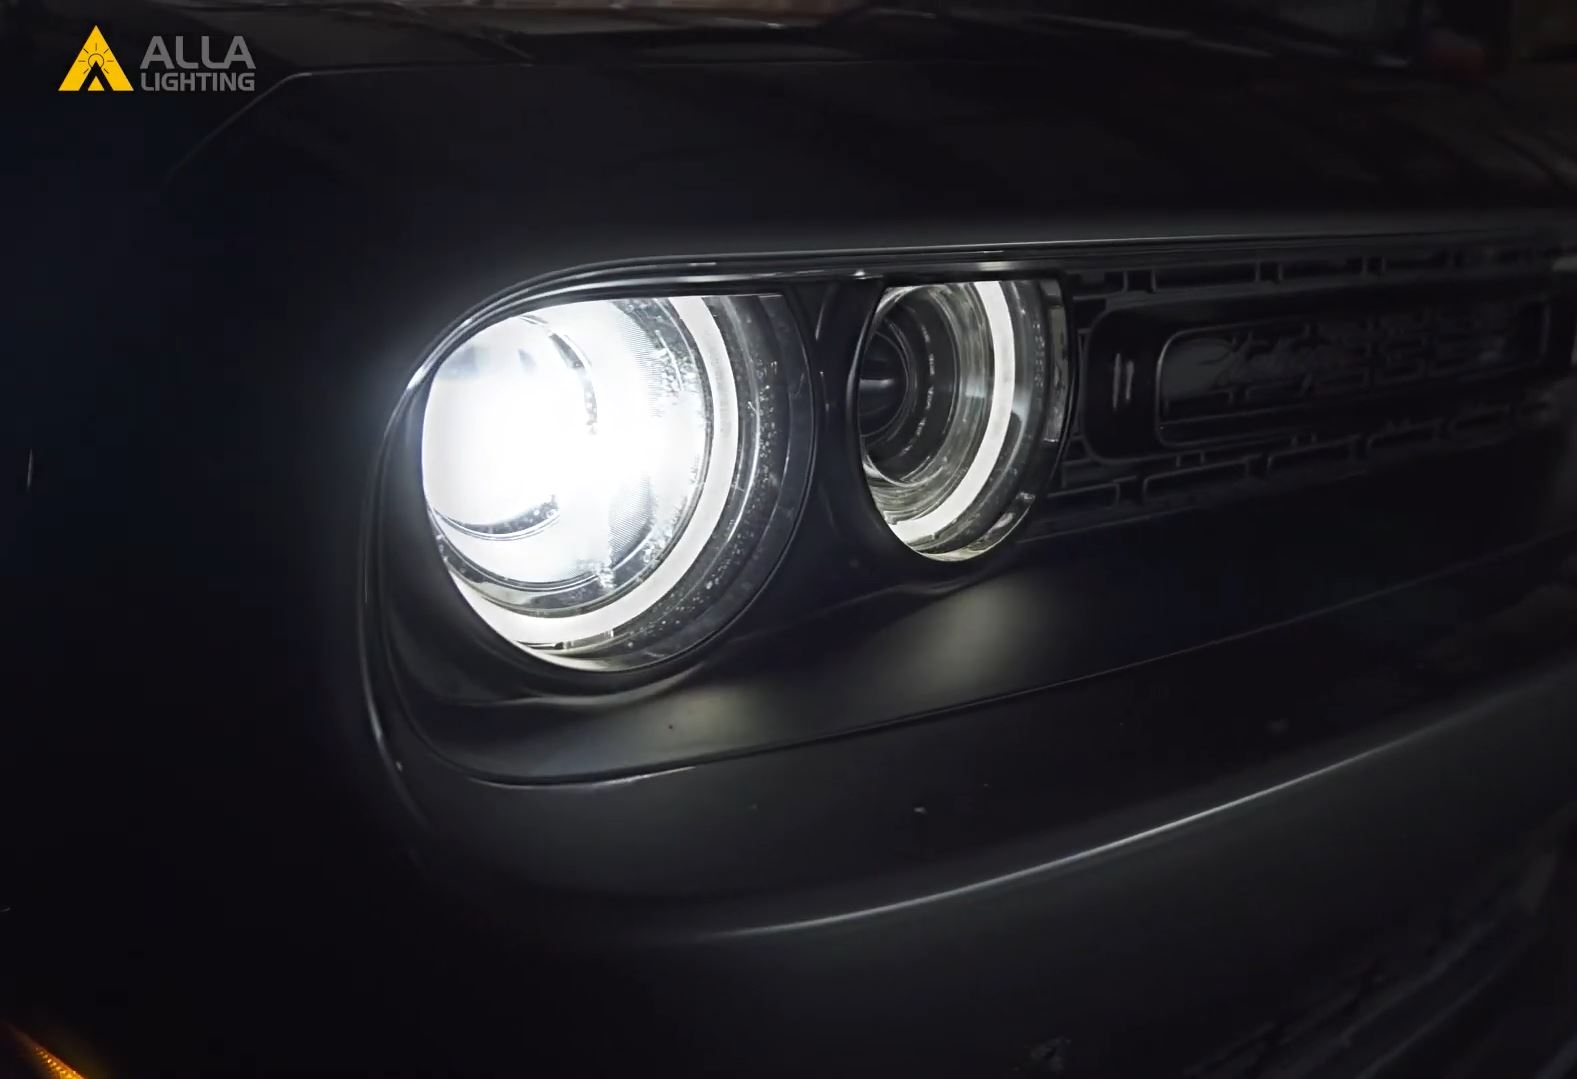 2015-2020 Dodge Challenger Headlight Upgrade and install Best Brightest LED 71